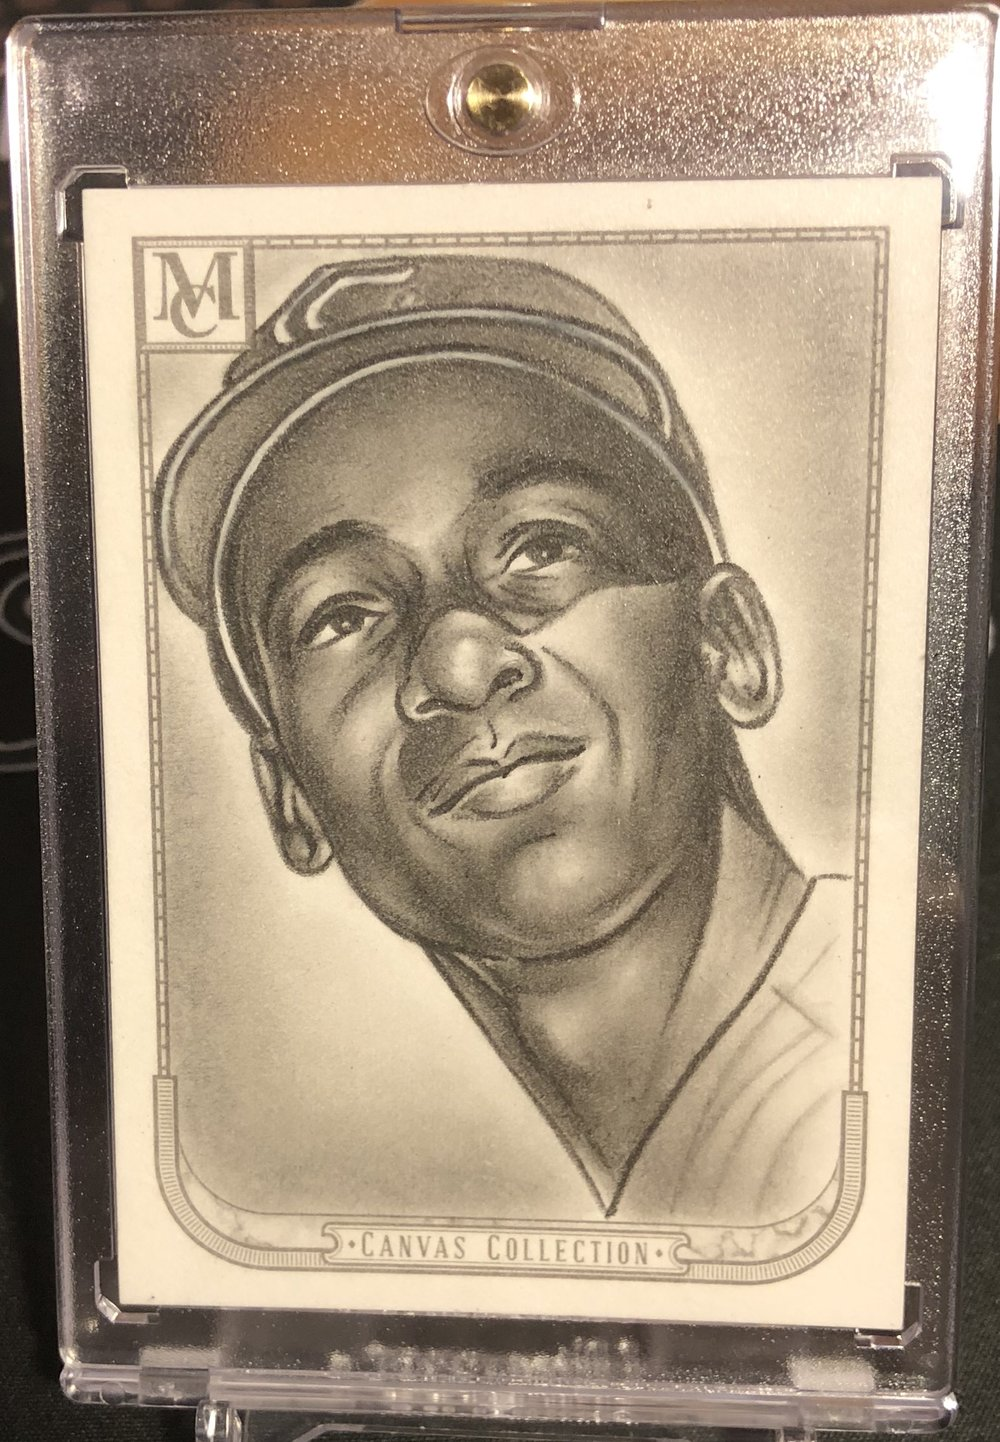 2018 Topps Museum Collection Ernie Banks Canvas Collection Original Art Card 1/1